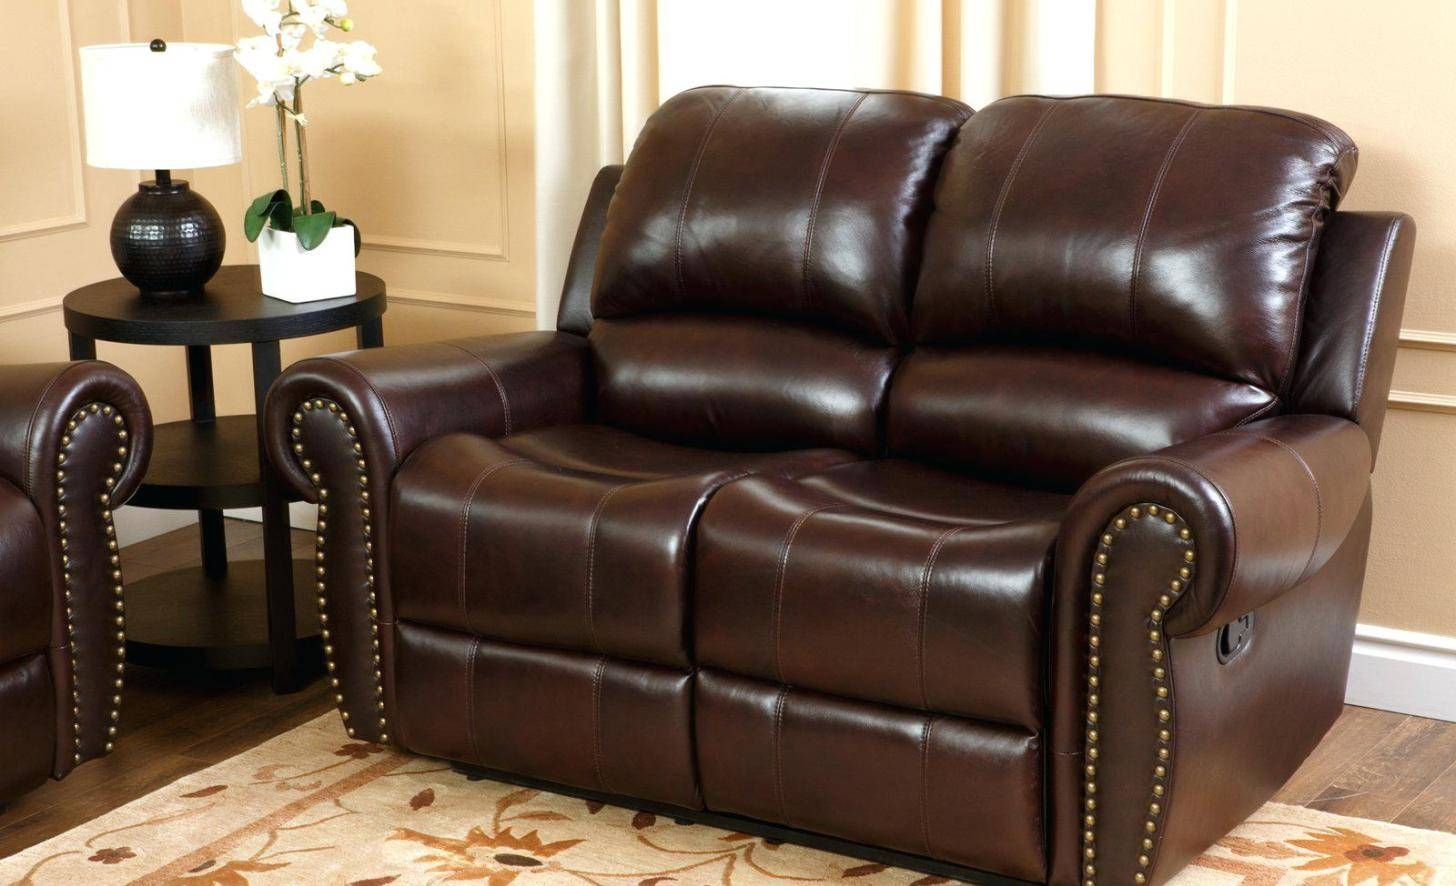 Recliner : Burgundy Leather Recliner Chair Noticeable Burgundy With Abbyson Recliners (View 10 of 15)